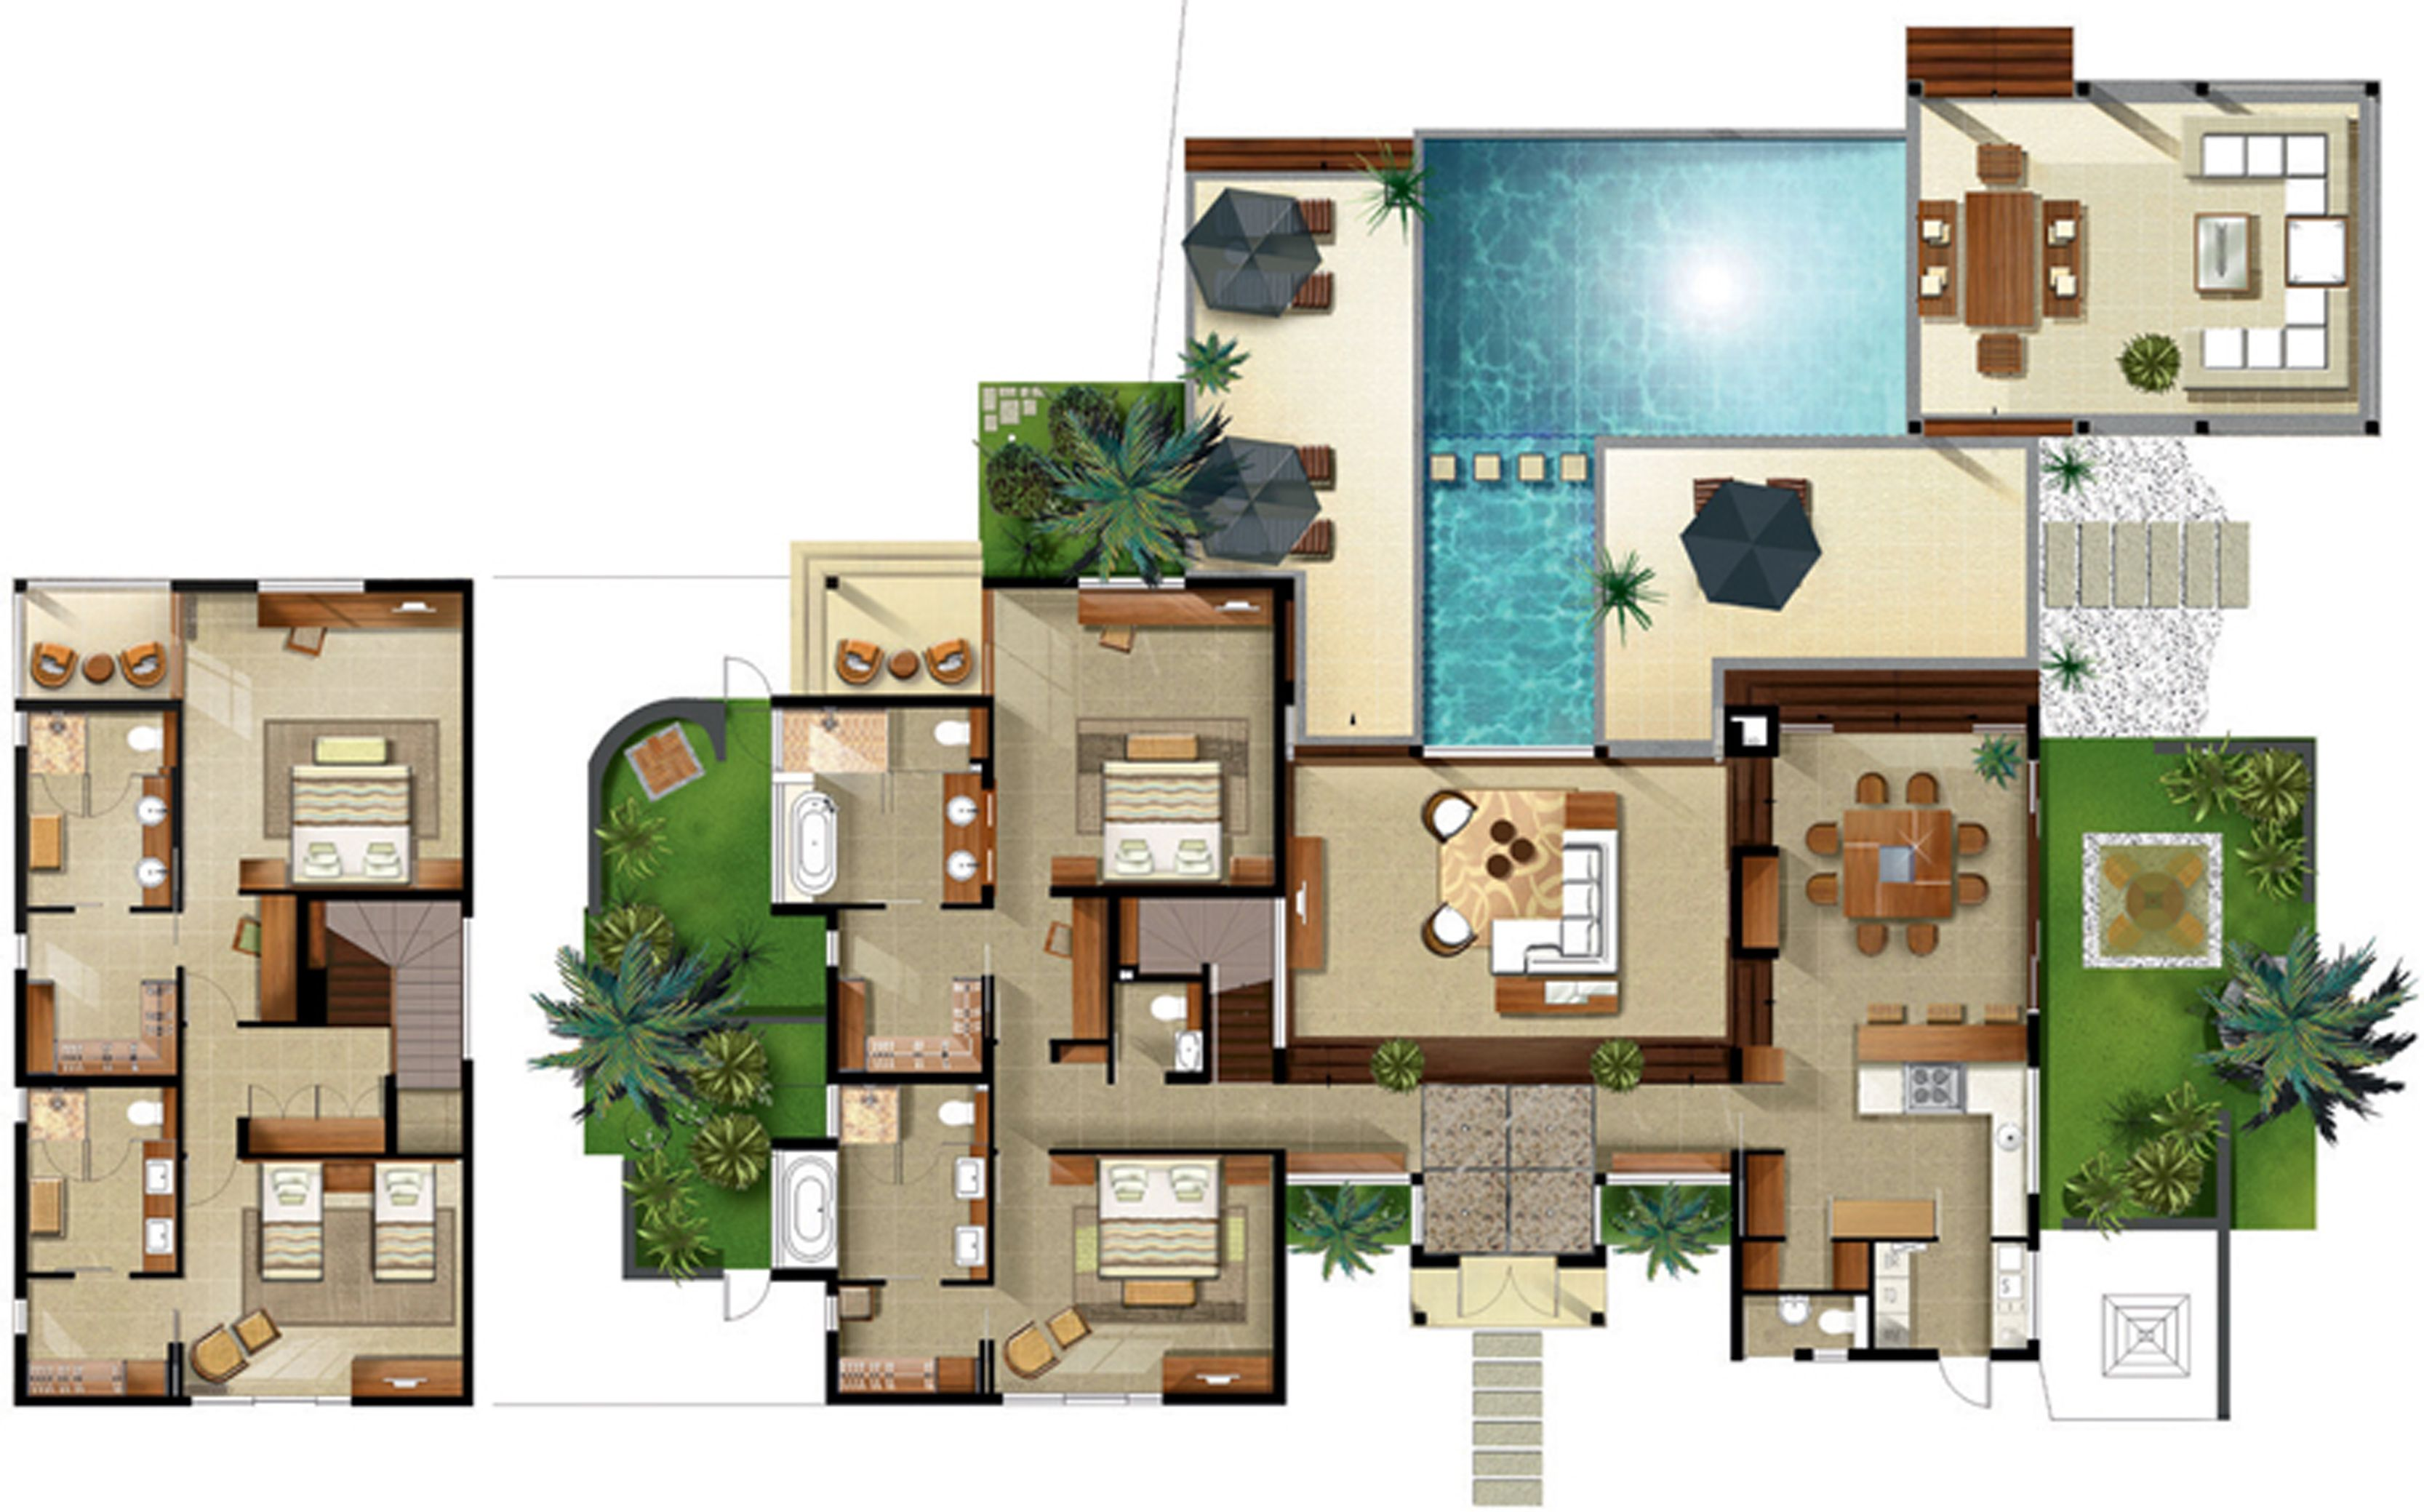 Disney beach club villas floor plan resort villa floor for Apartment villa design